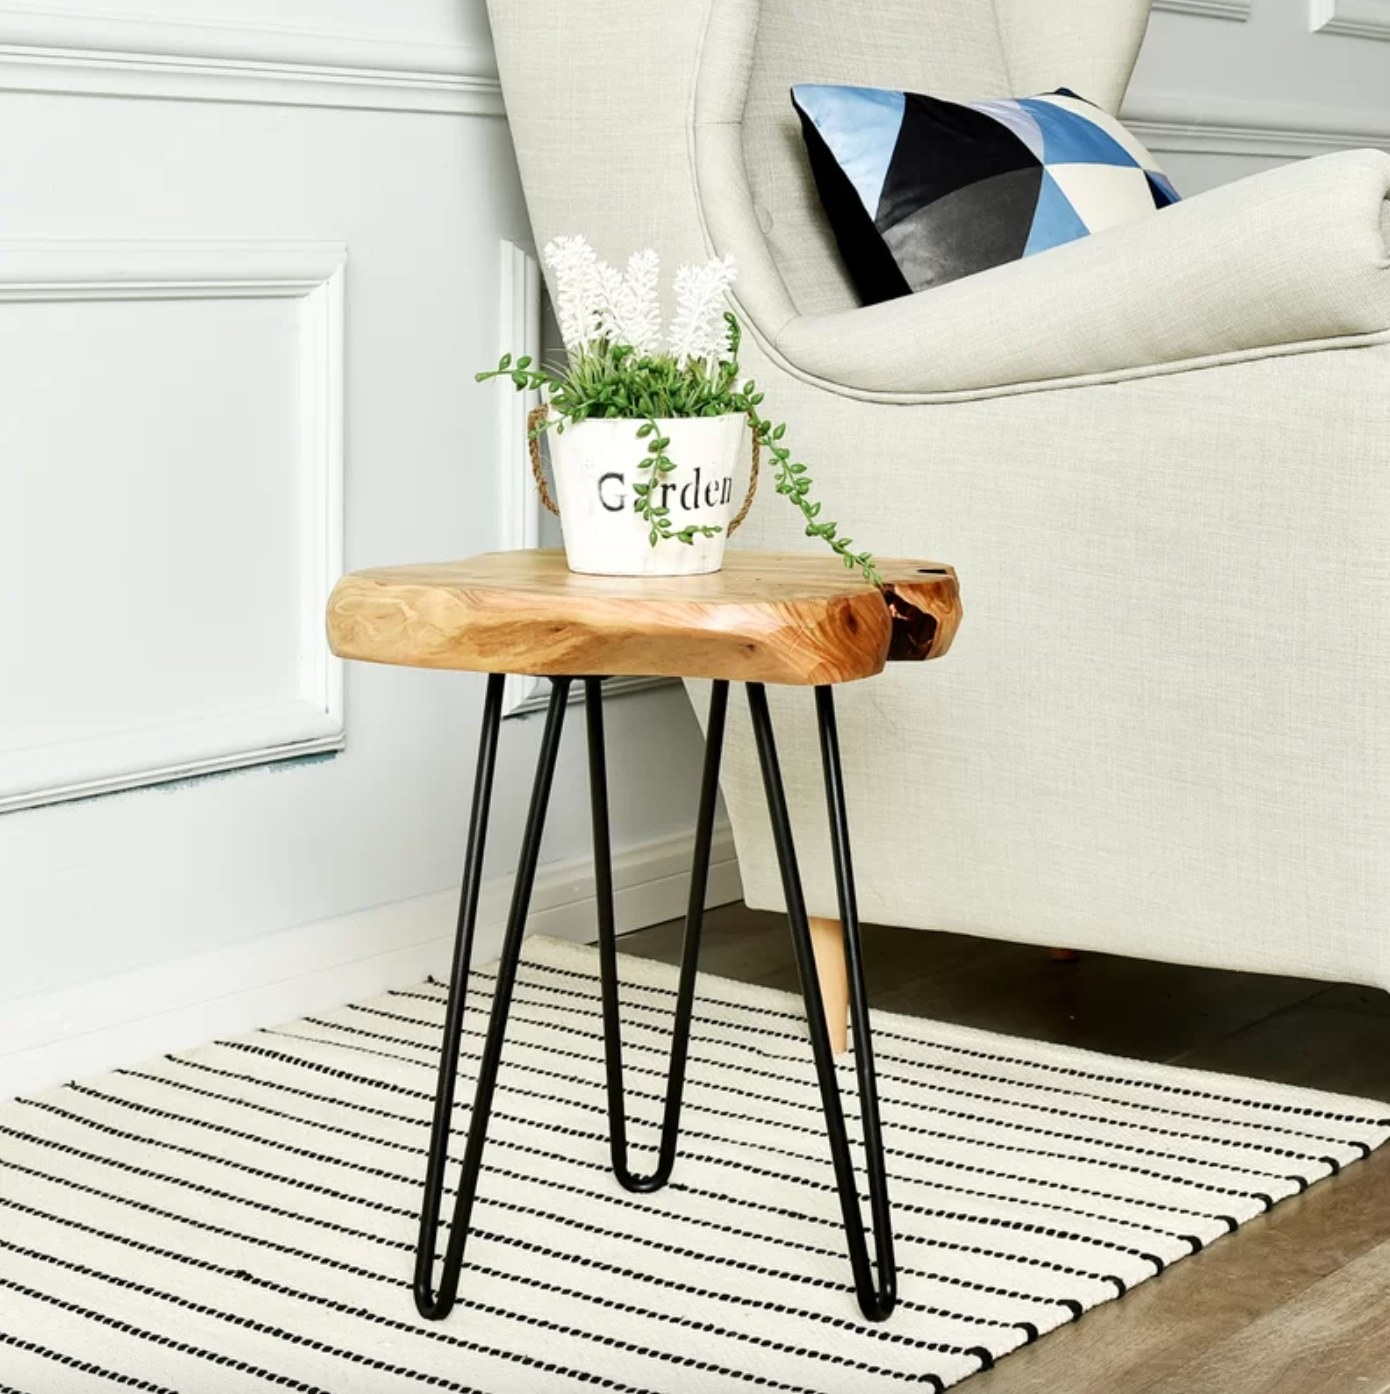 The end table made of wood with black metal hairpin legs holding a succulent plant